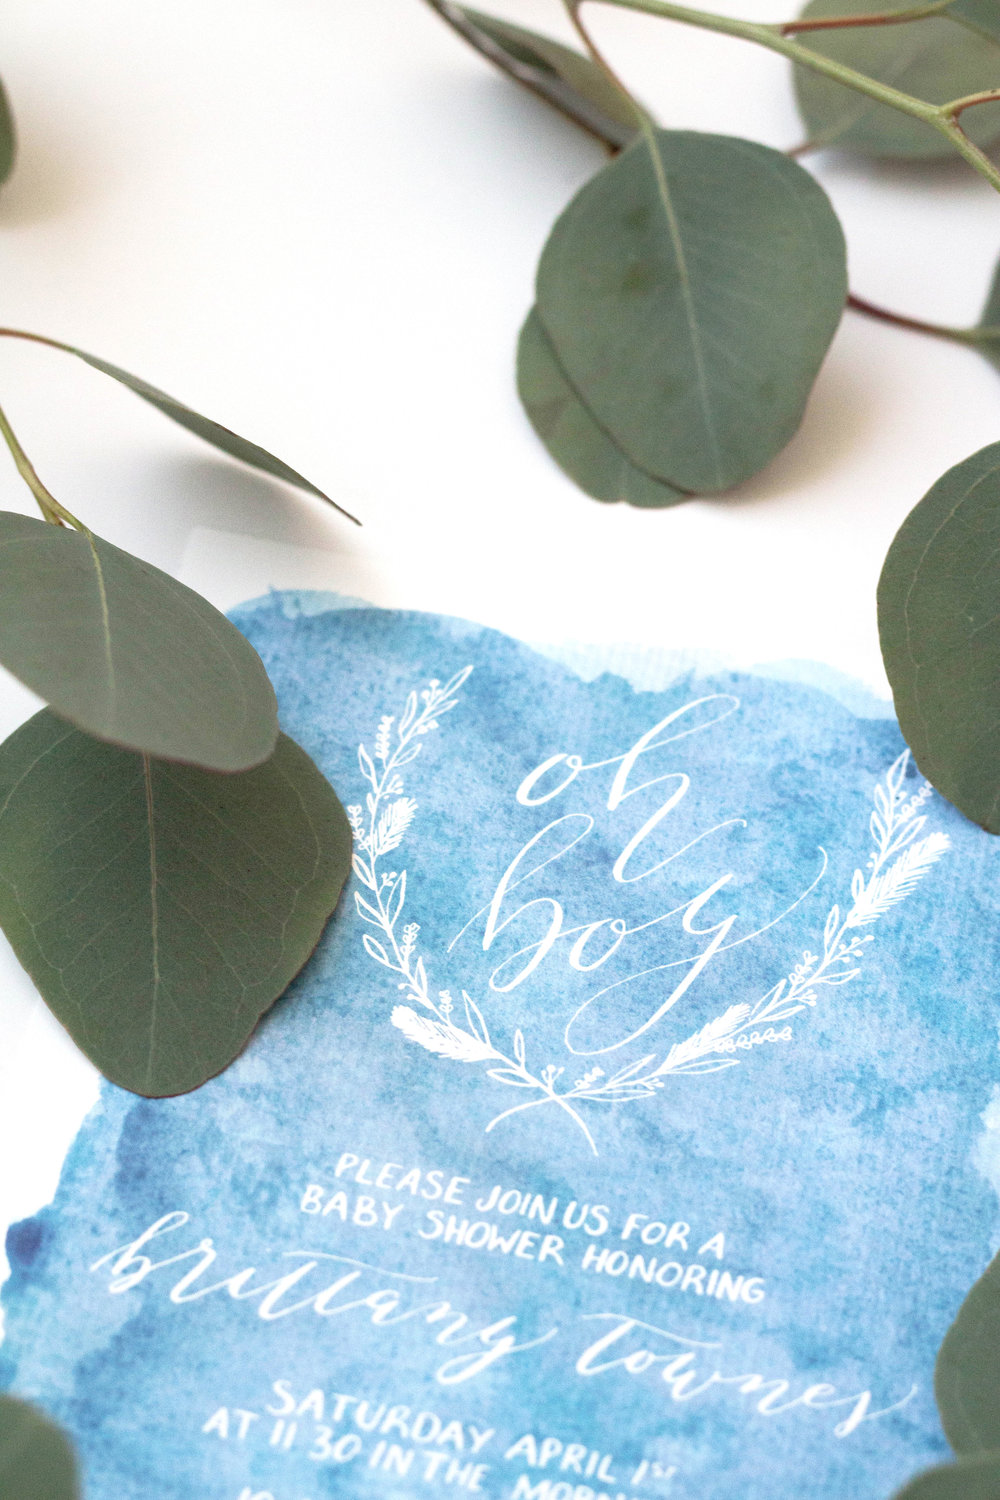 Baby Shower Invitation featuring Organic Modern Calligraphy  |  True North Paper Co.